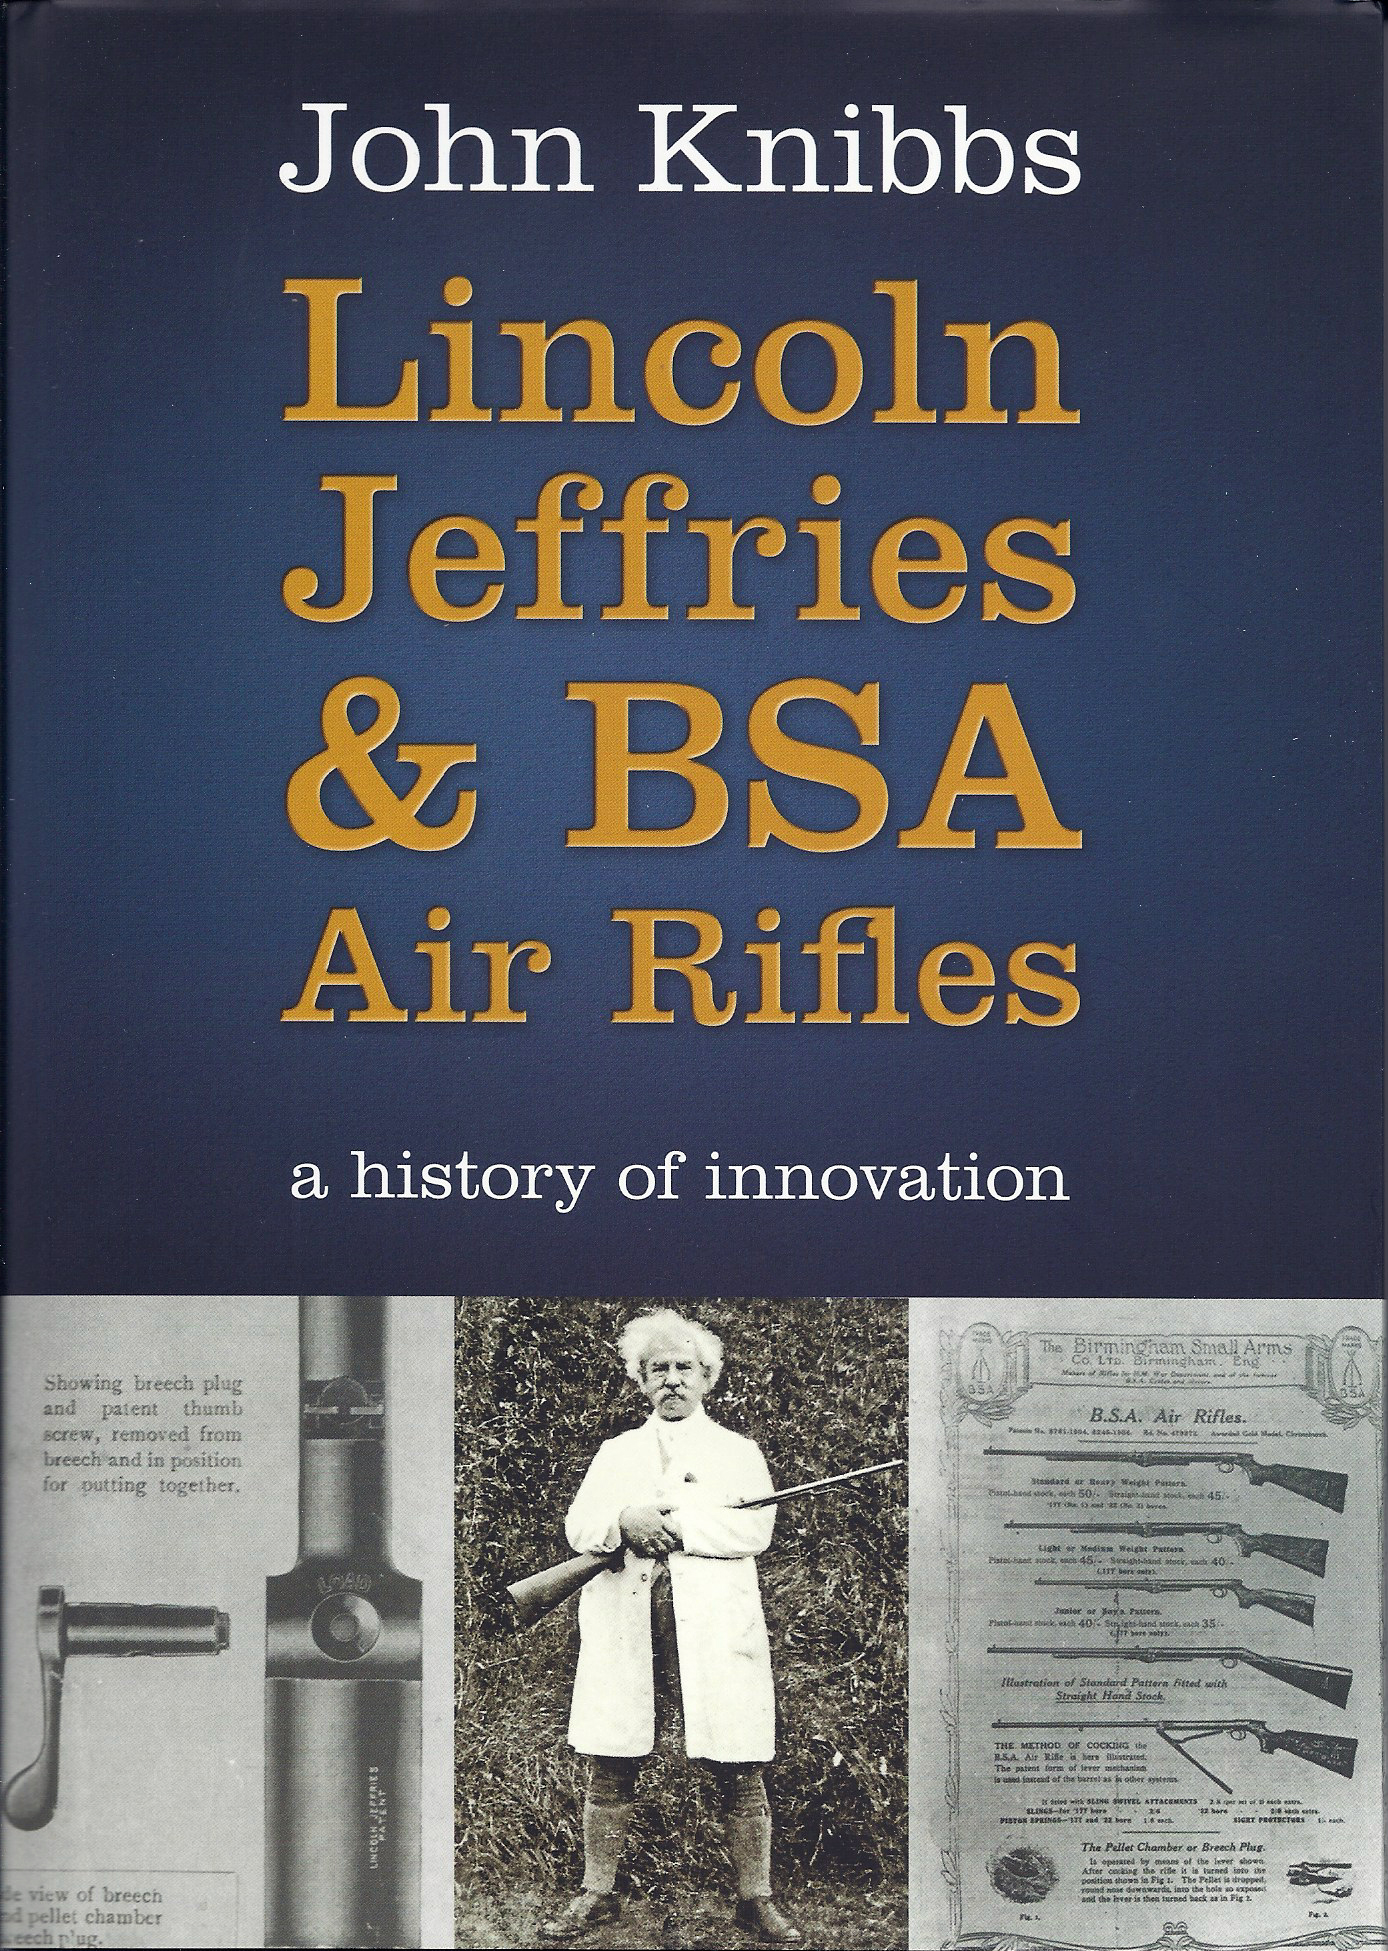 Lincoln Jeffries & BSA Air Rifles